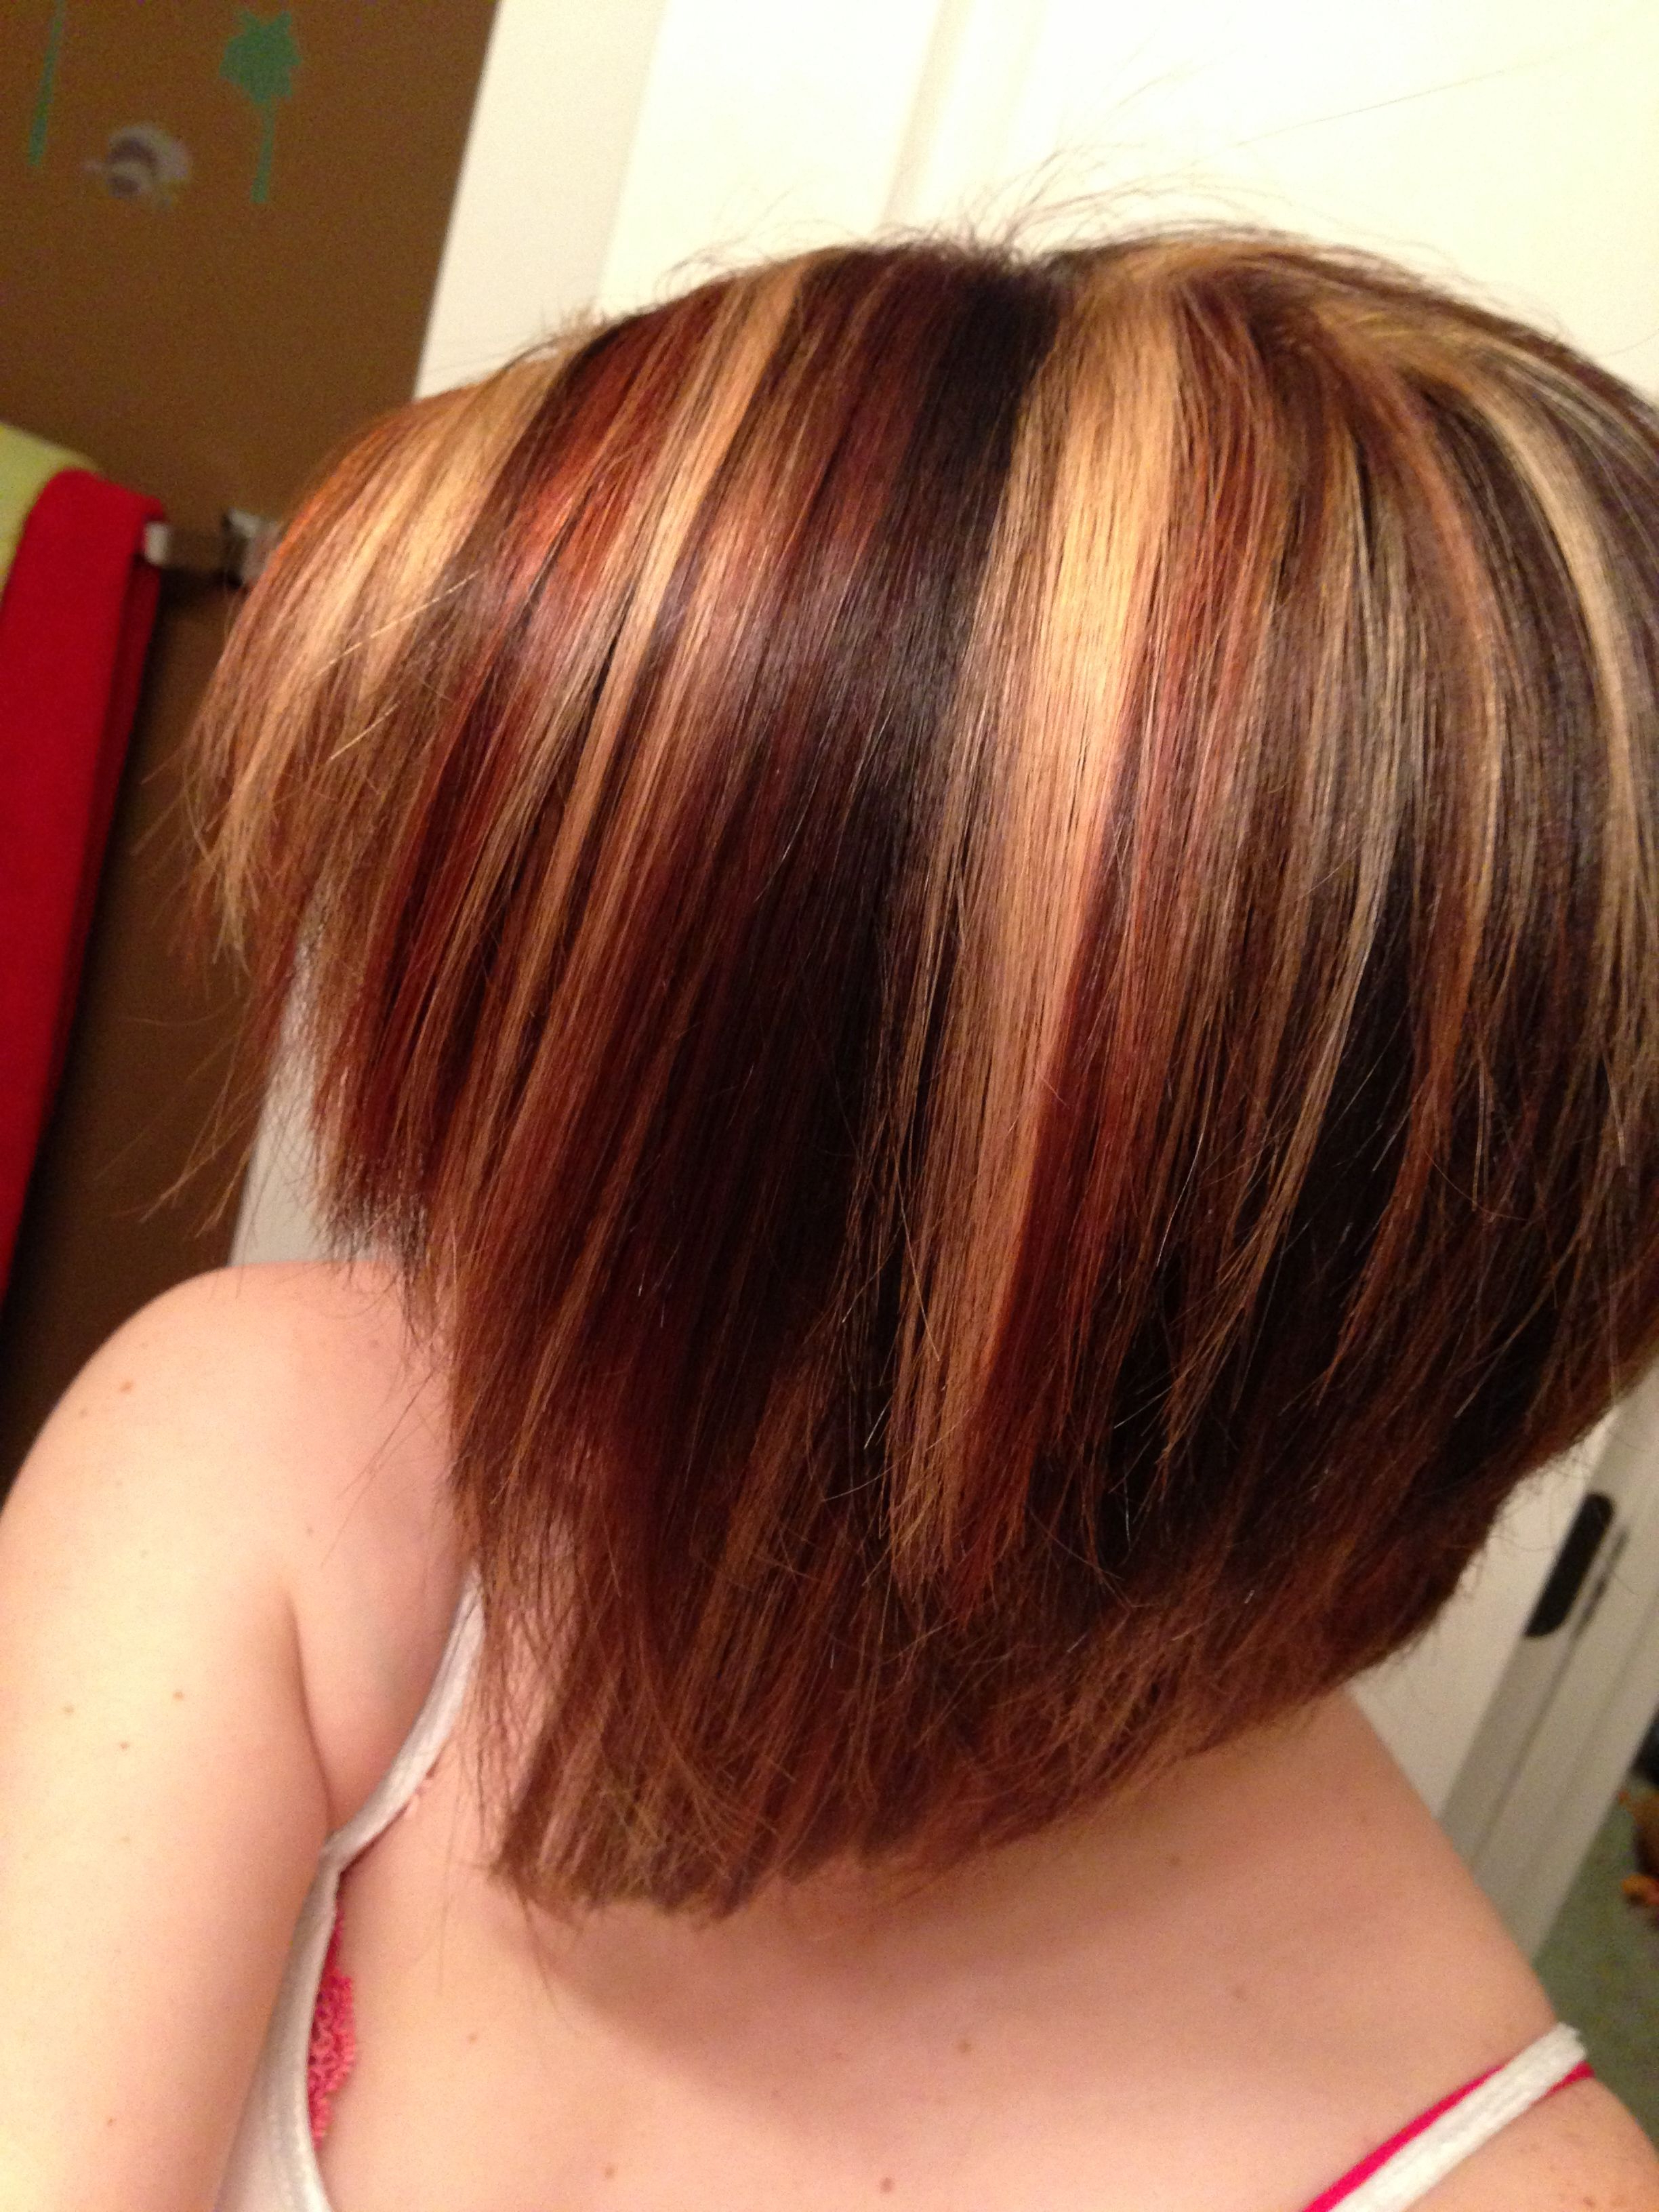 Angled Bob Short Cut With Red And Blonde Highlights | Hair And Regarding Short Haircuts With Red And Blonde Highlights (View 12 of 25)